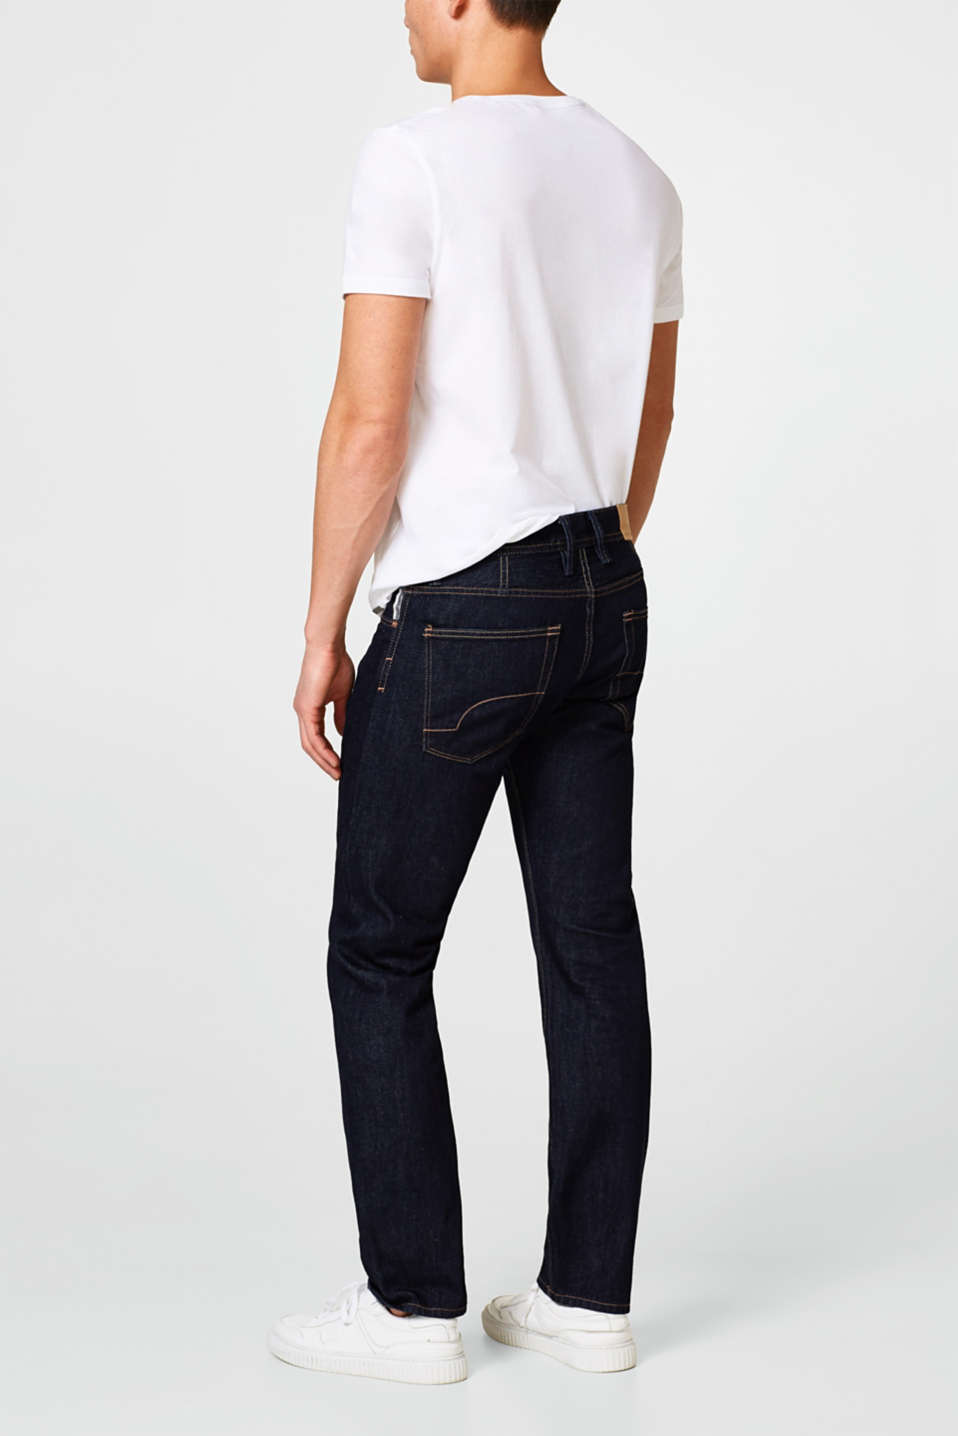 5 pocket-jeans, non stretch-denim.